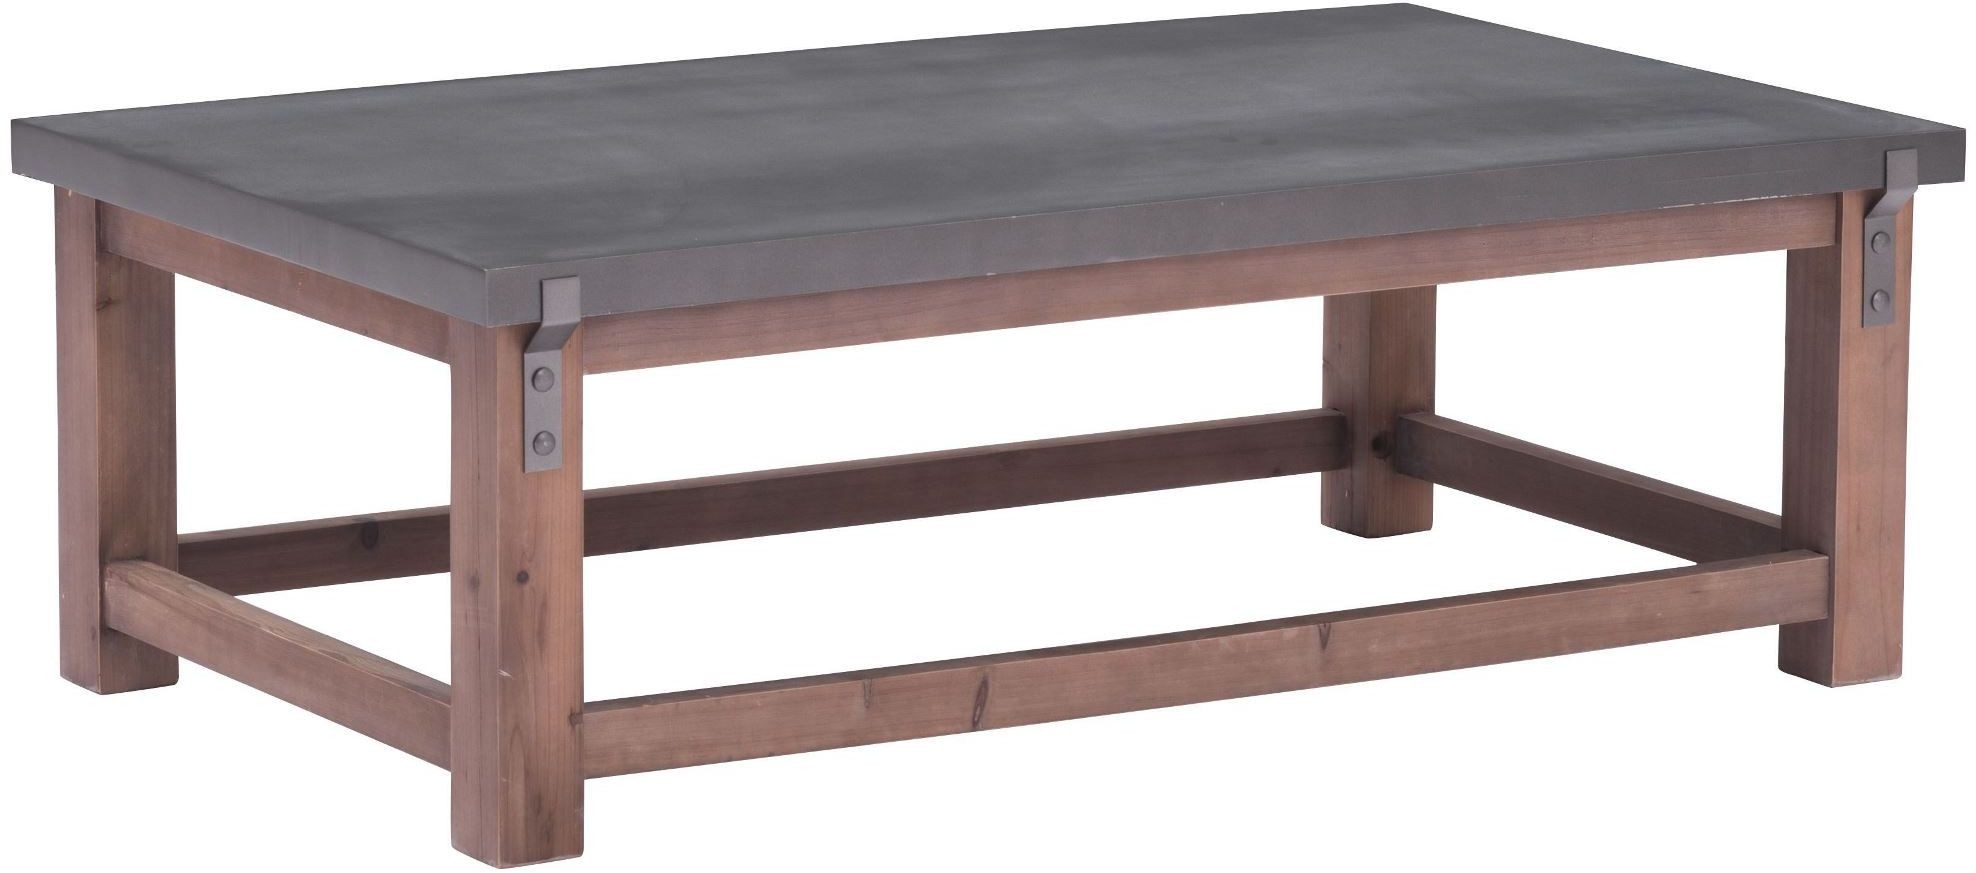 Greenpoint gray and distressed fir coffee table from zuo for K furniture coffee table